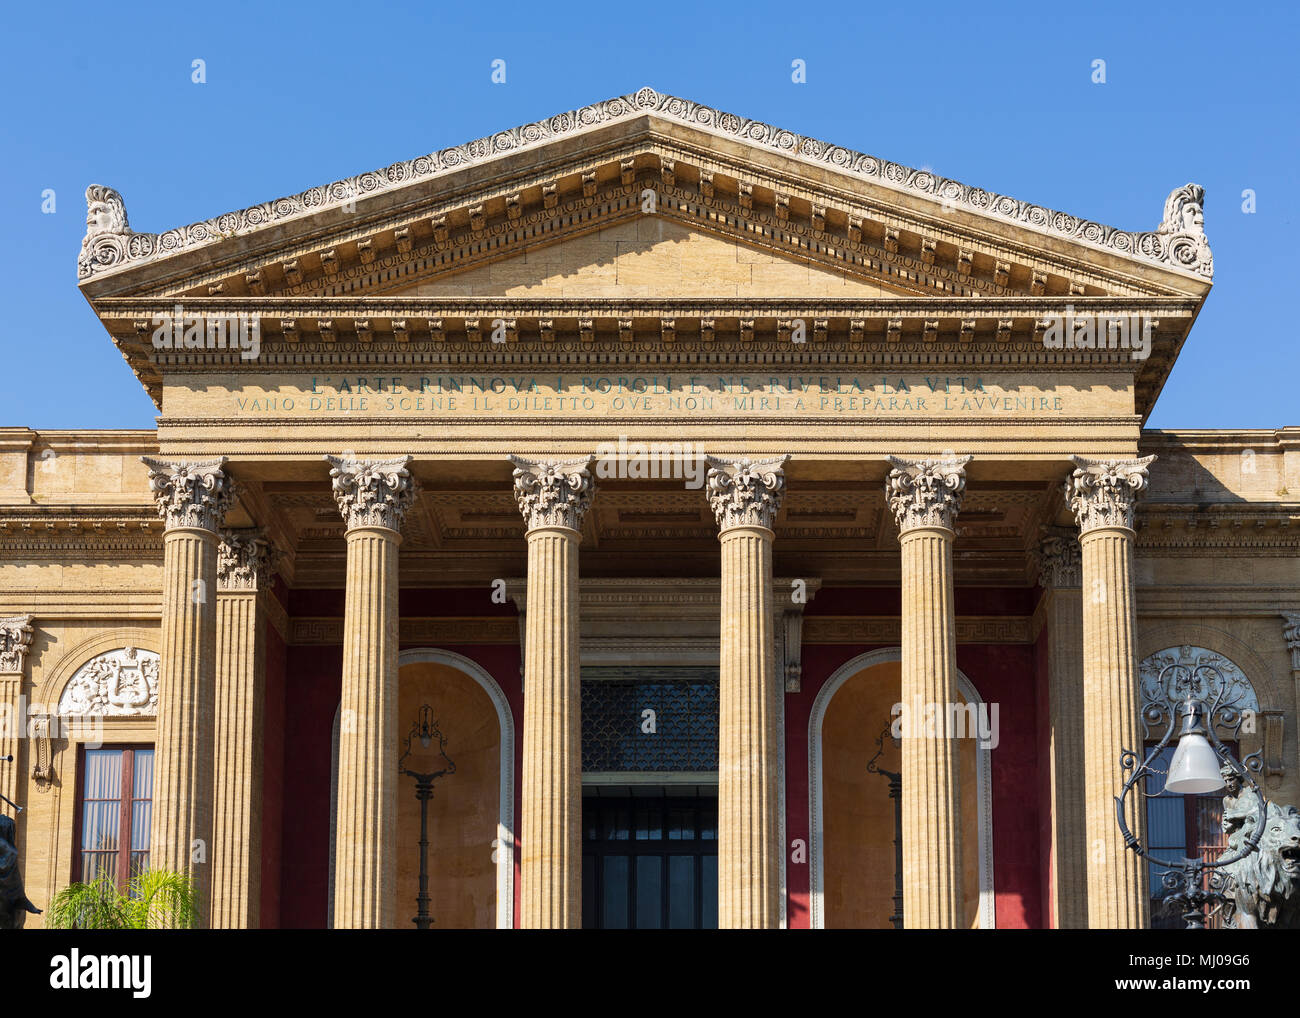 Teatro Massimo in Palermo, Sicily, Italy - Stock Image